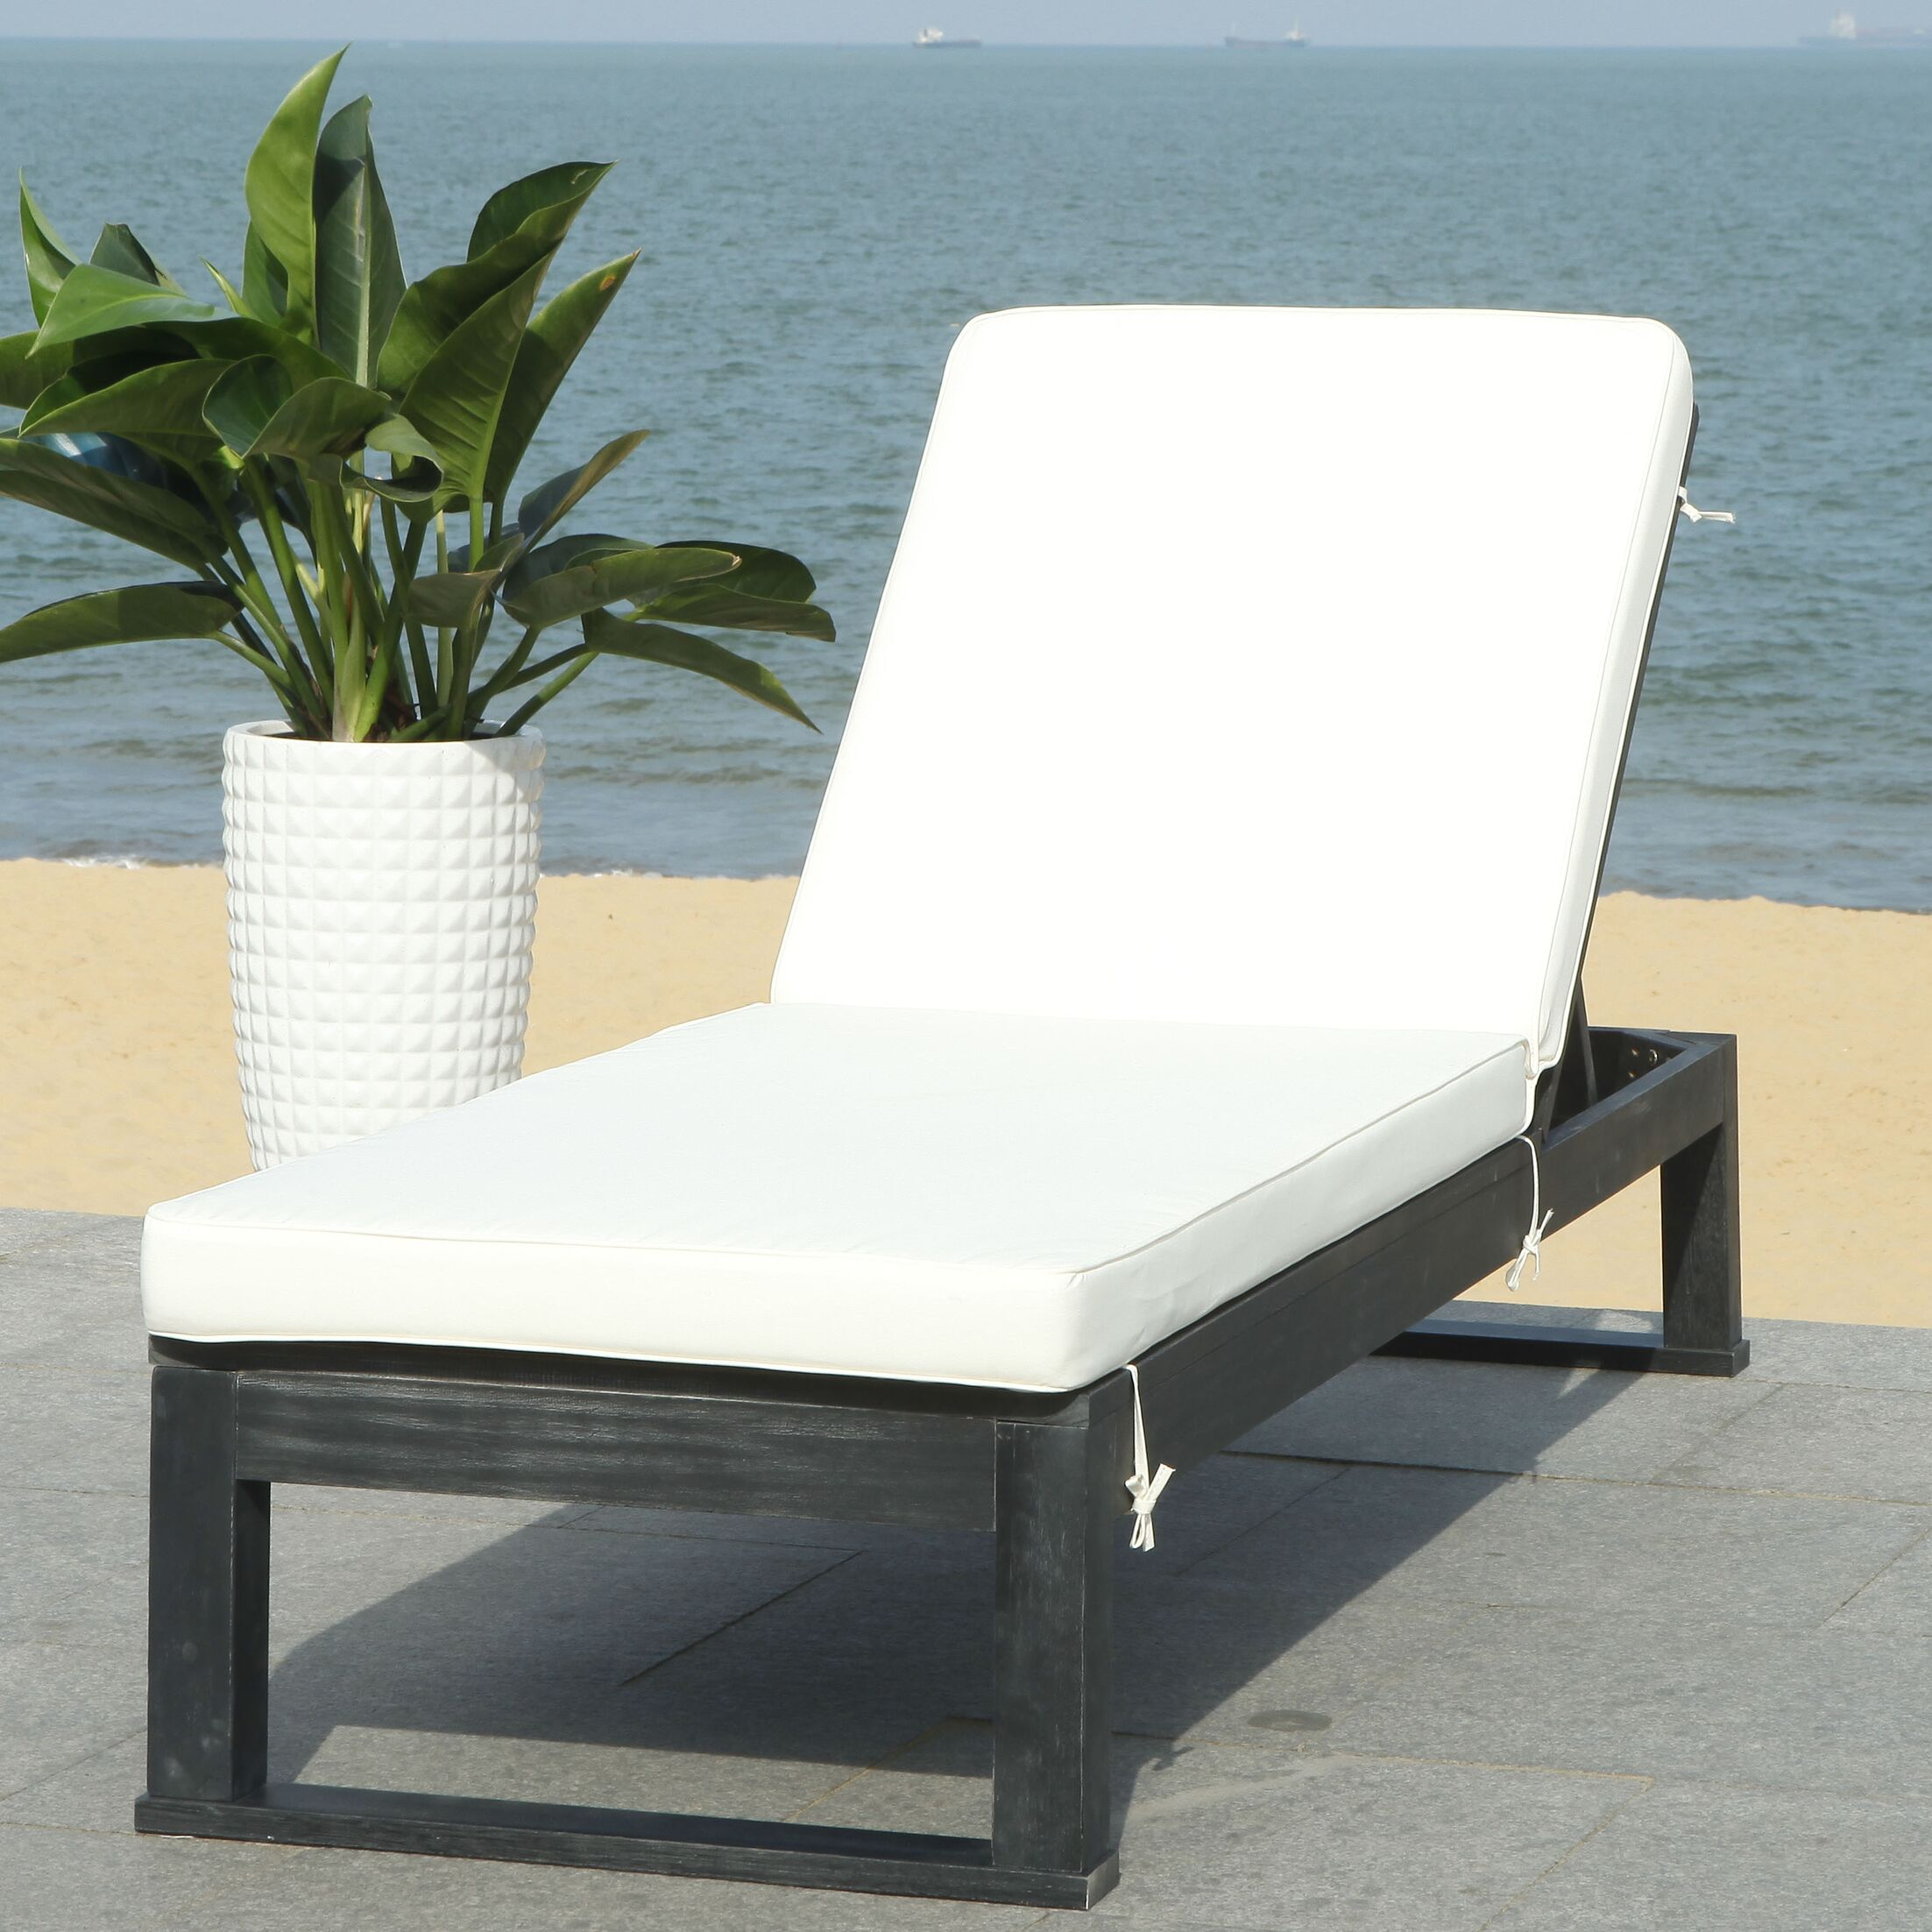 Darlington Sunlounger Reclining Chaise Lounge with Cushion Finish: Black